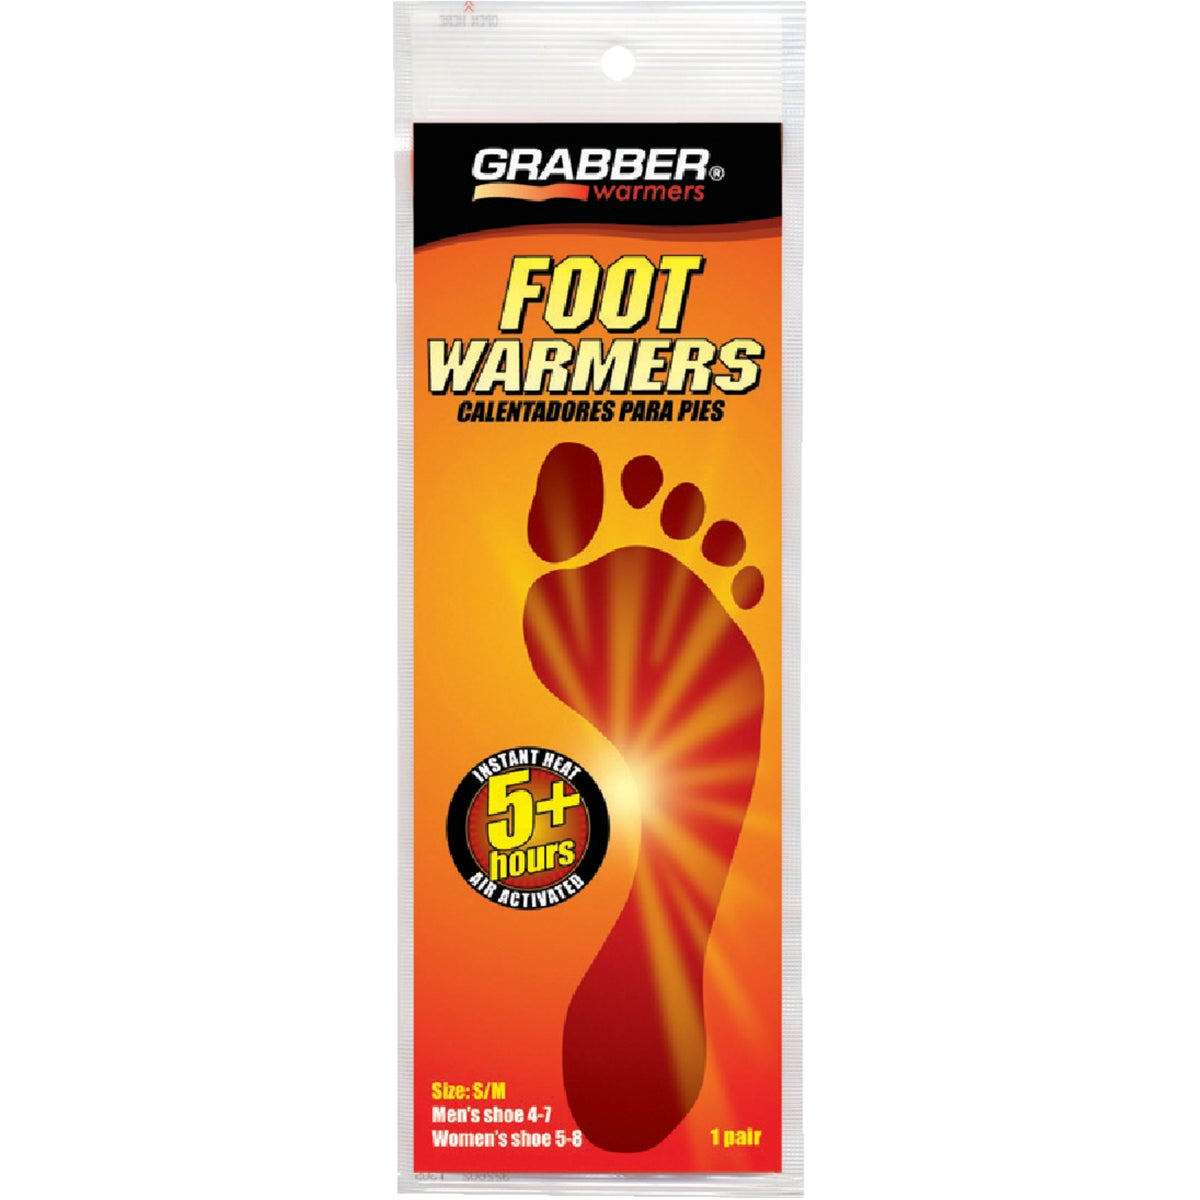 S/M FOOT INSOLES WARMER - CSFWSM12 by Grabber Performance